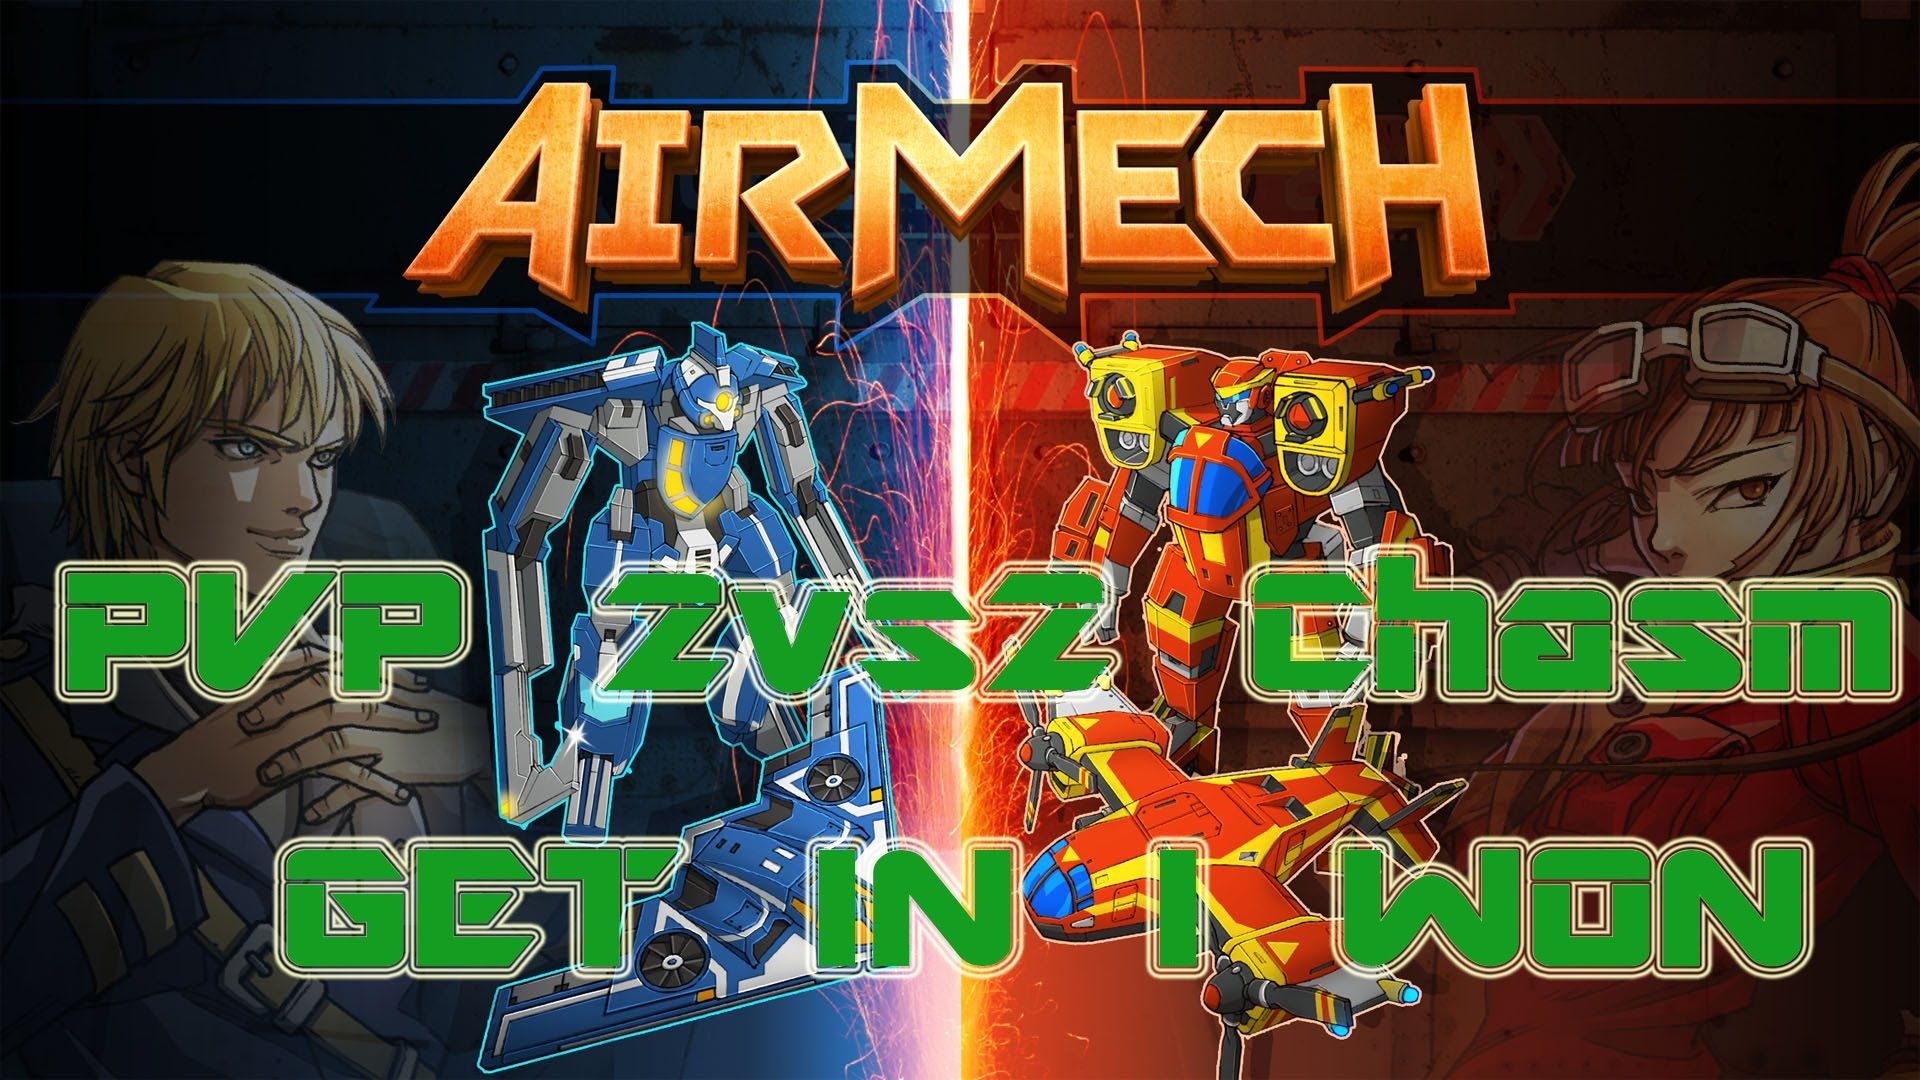 AirMech PVP 2vs2 Chasm GET IN I WON Games, Mmorpg games